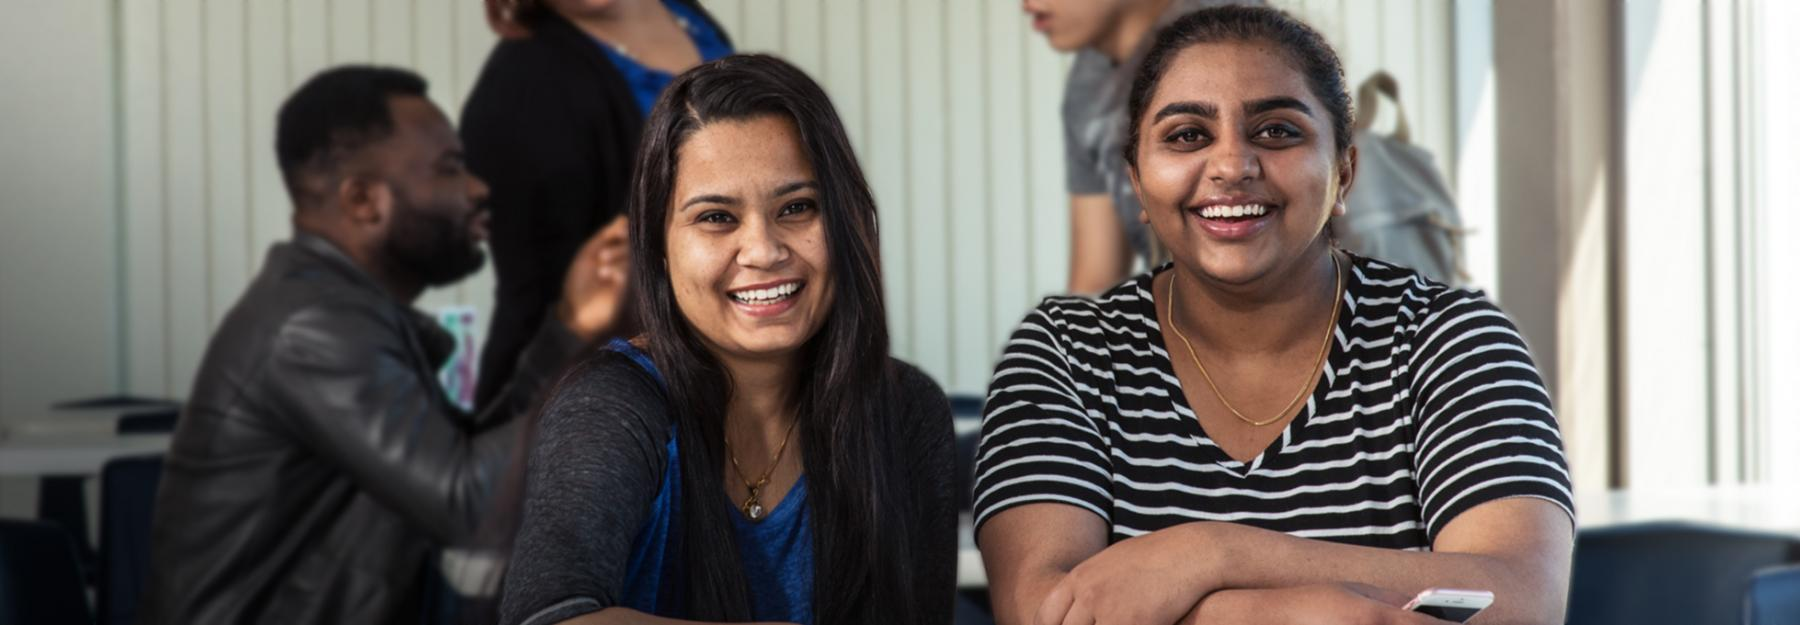 Two female international students looking into camera and smiling while in the college cafeteria